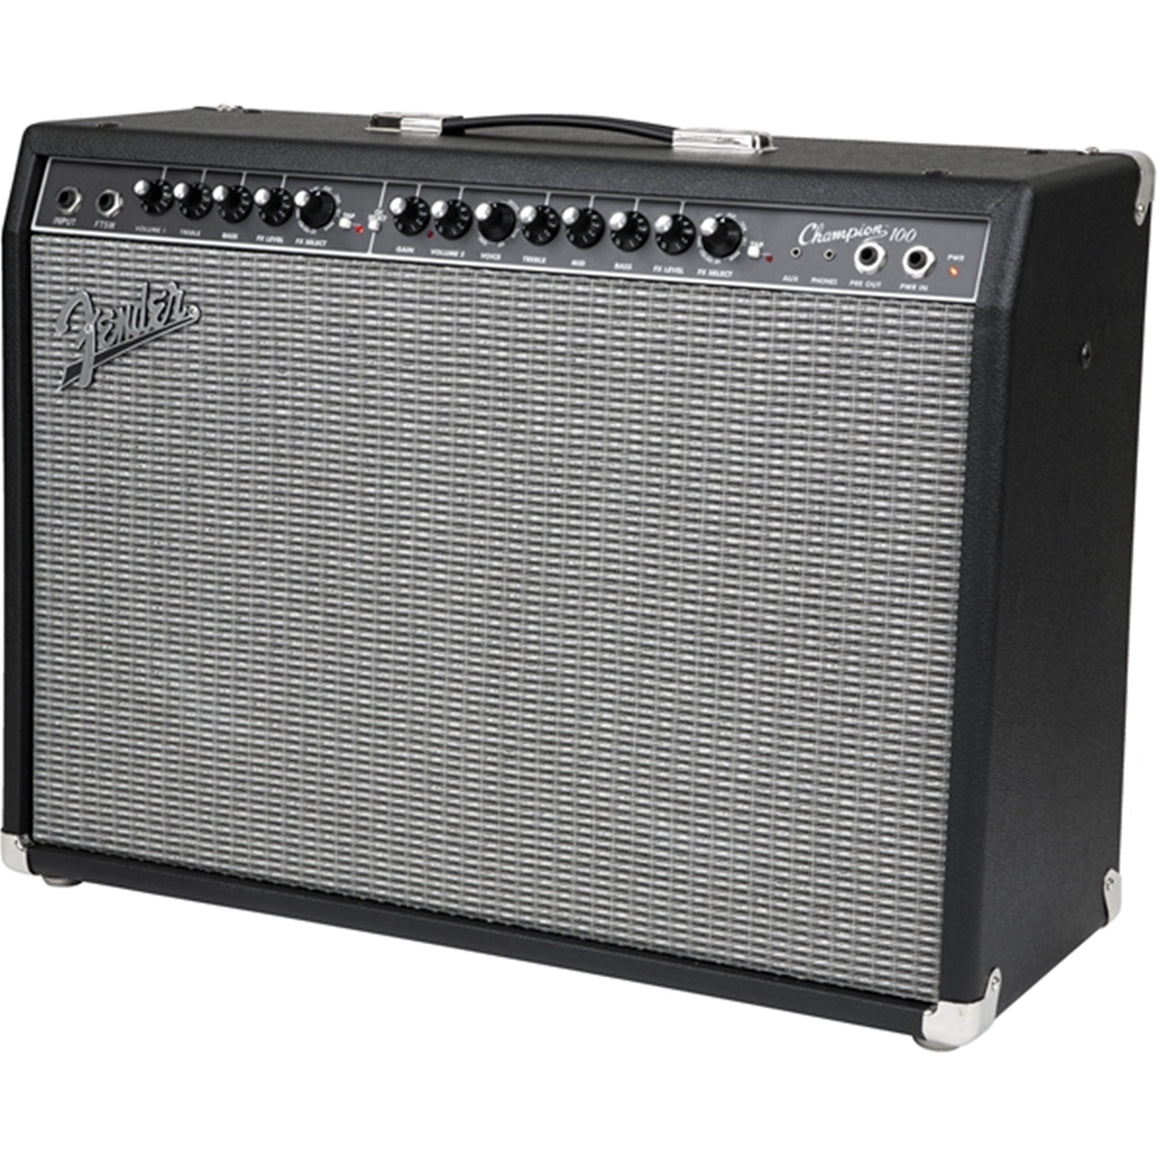 FENDER 2330400000 Champion 100 Electric Guitar Amplifier